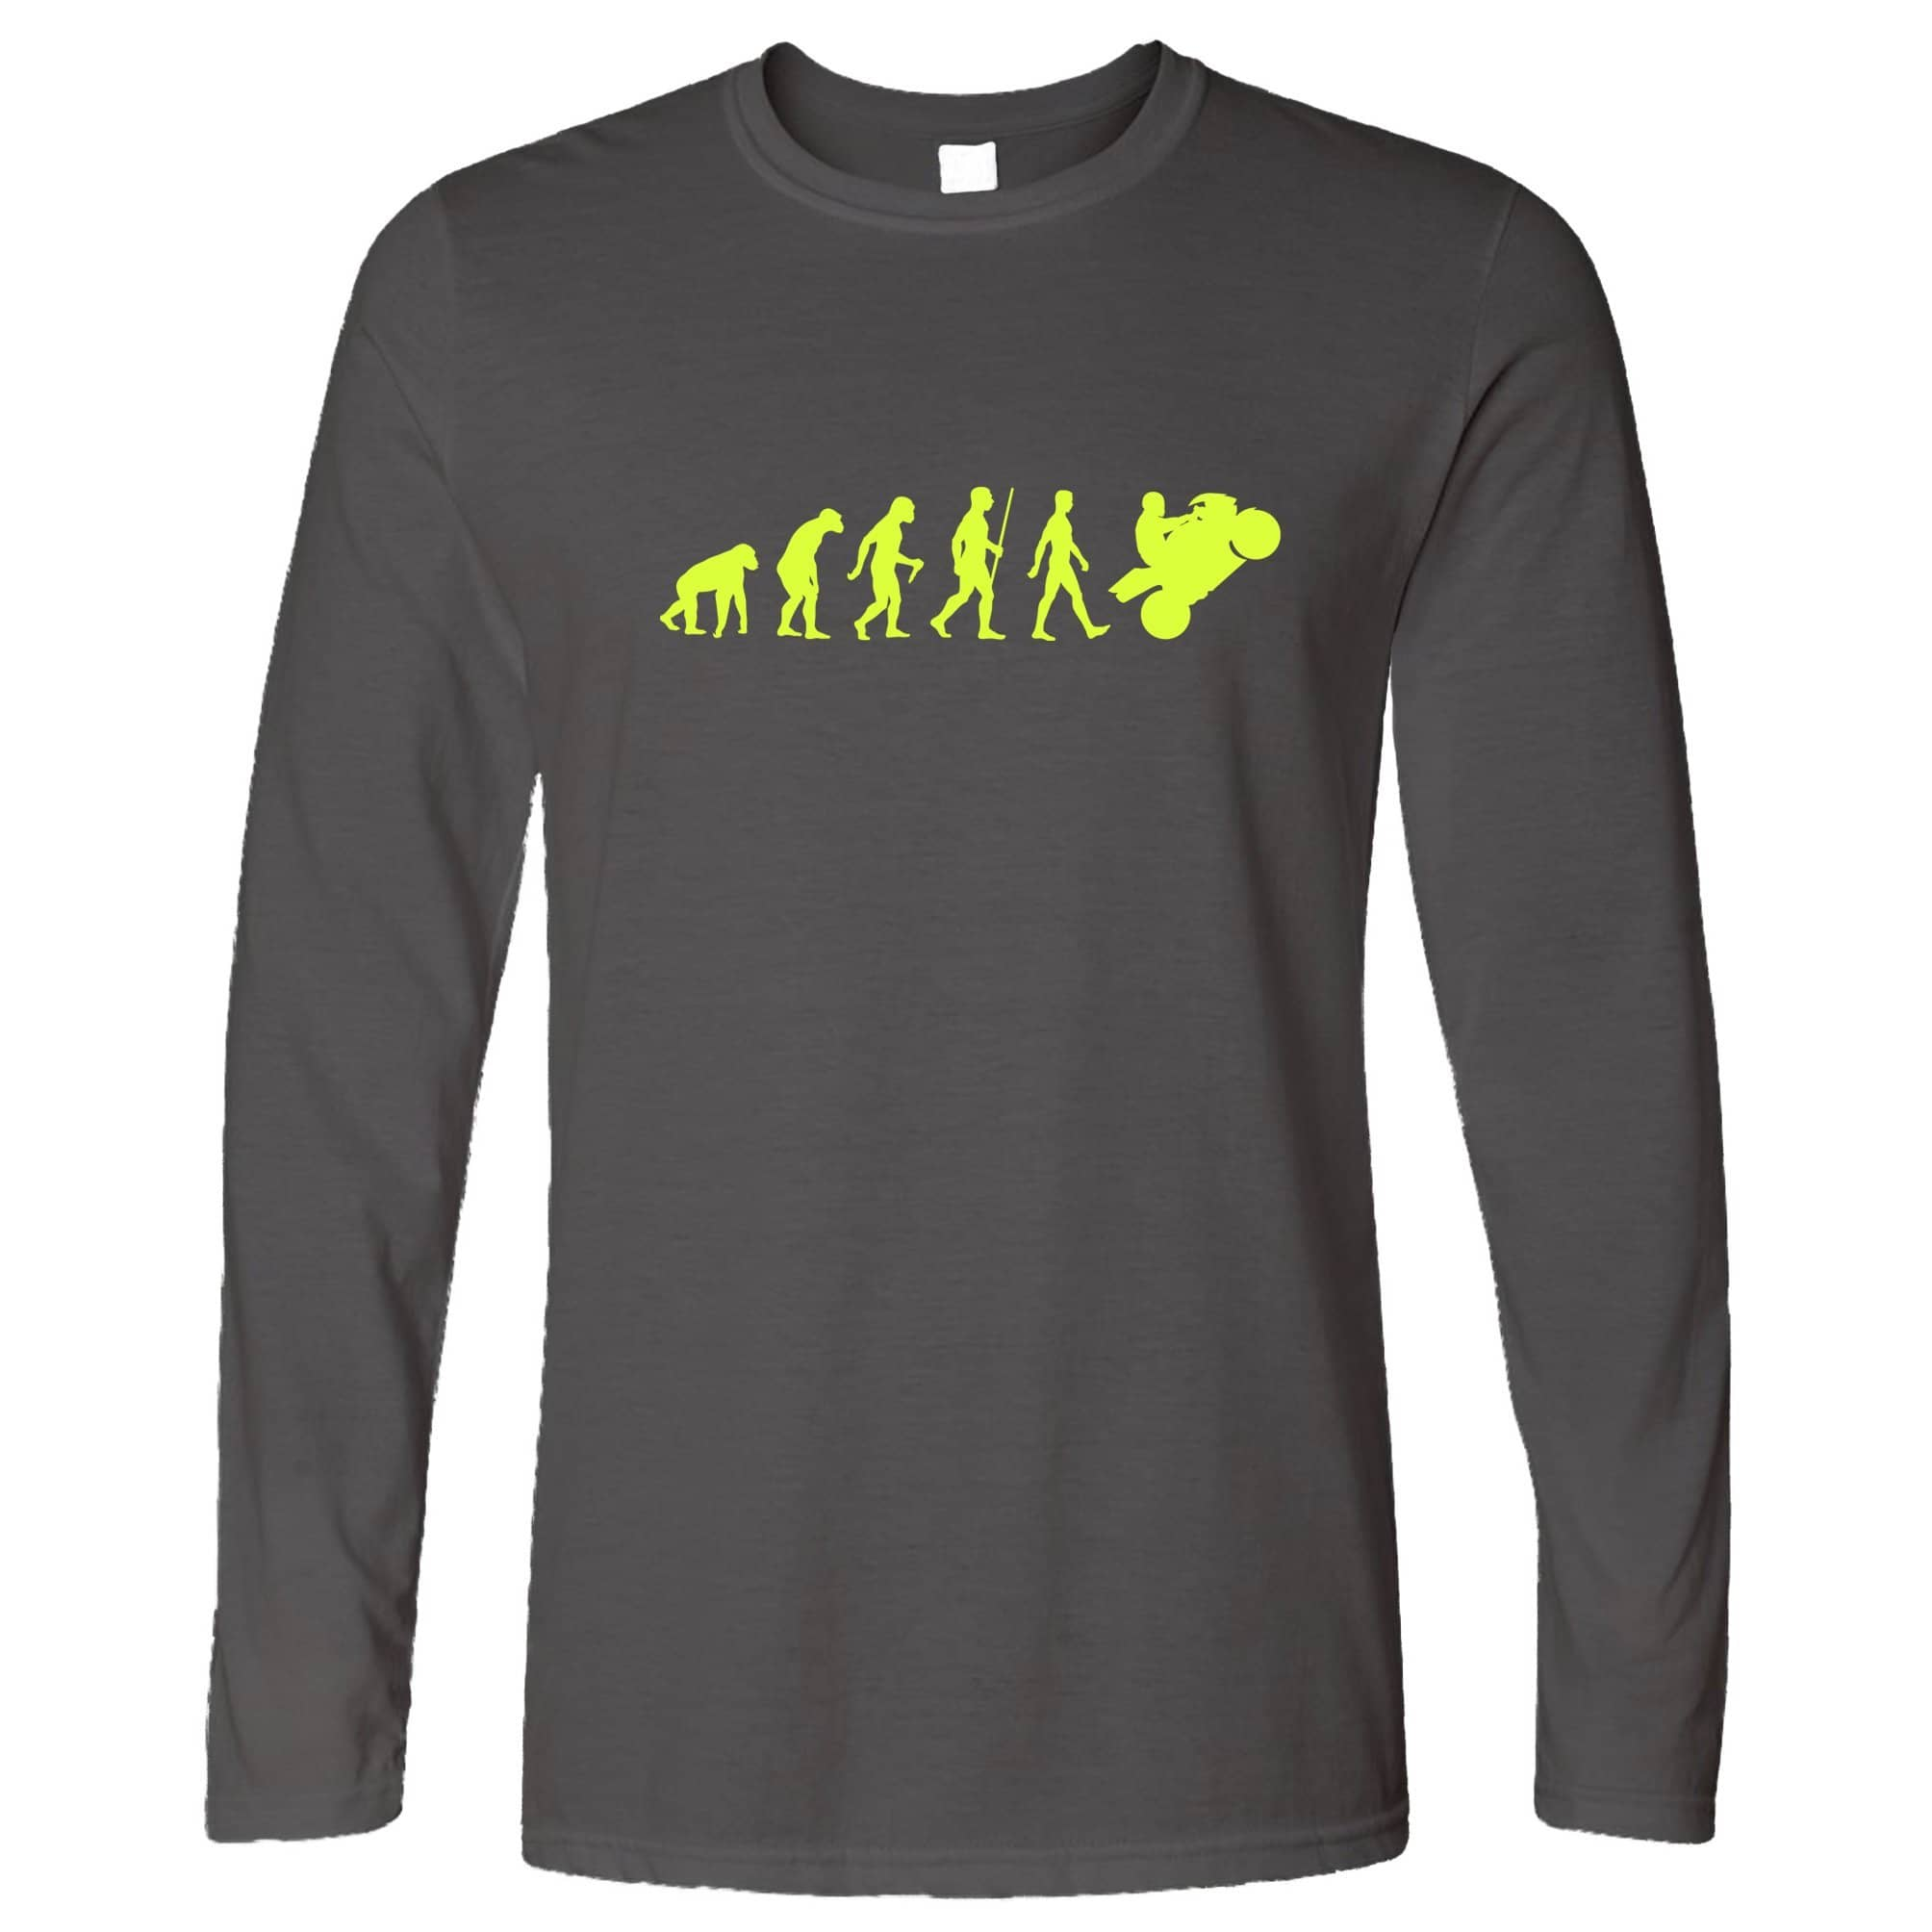 Biking Long Sleeve Evolution Of A Motorbike Neon Yellow T-Shirt